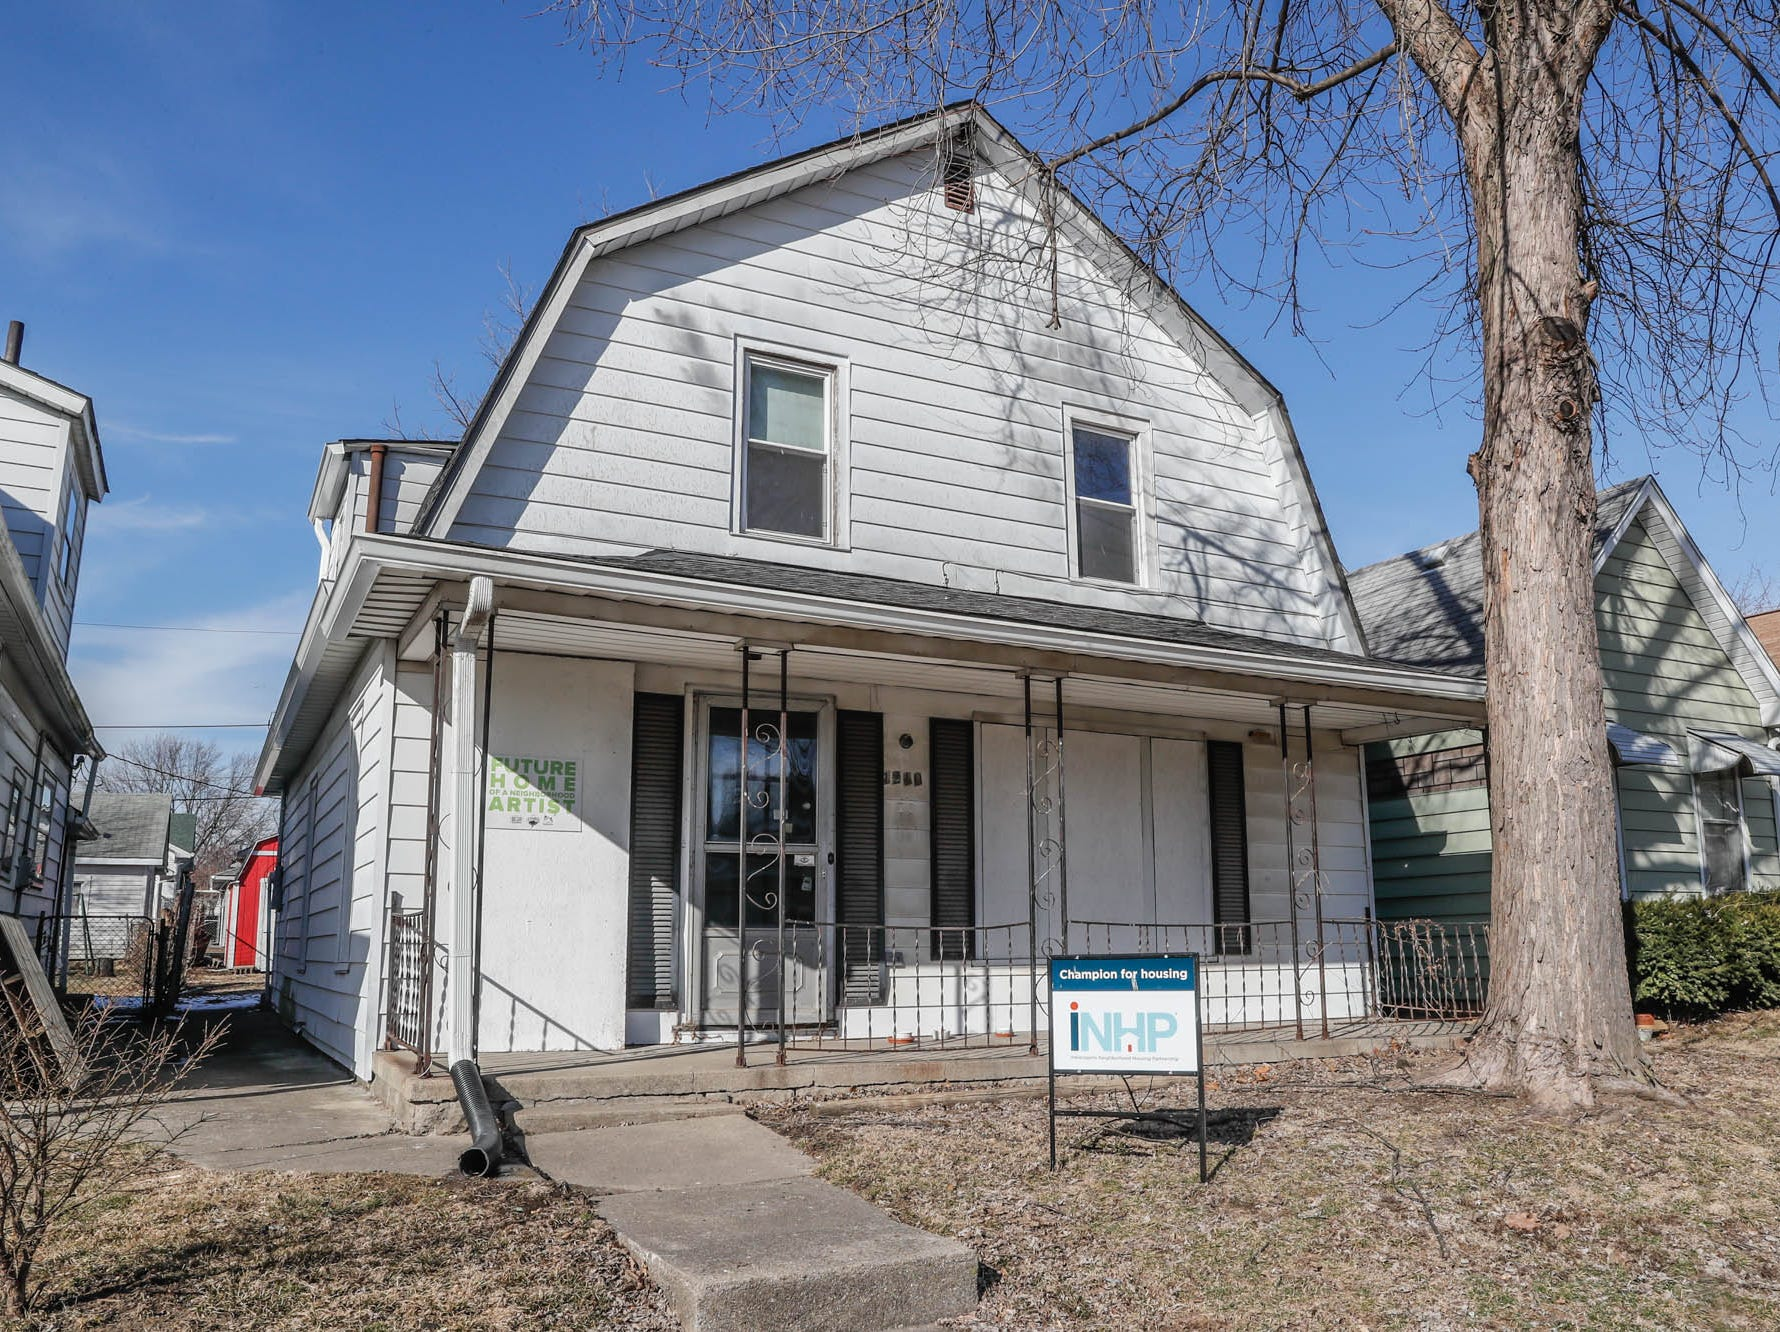 The 'barn house'  on Cruft St., will soon be renovated to be part of the Big Car Collaborative and Riley Area Development affordable artist home ownership program on the near south side of Indianapolis on Wednesday, March 6, 2019. The goal of the Artist and Public Life Residency (APLR), will be to provide artists with home ownership while they work and collaborate with the greater community.